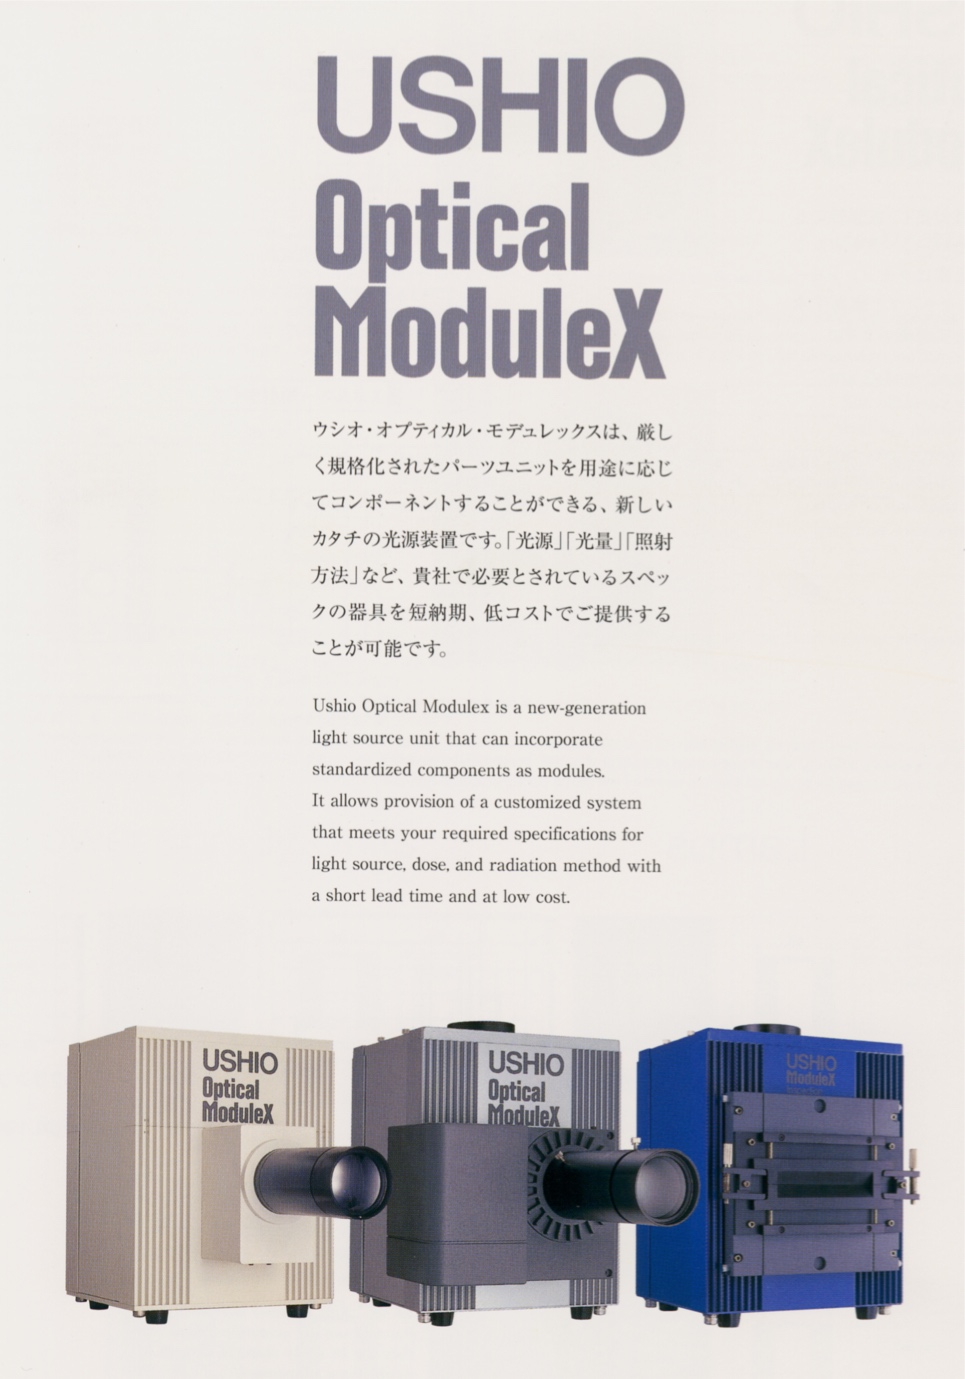 Optical Modulex ushiospax